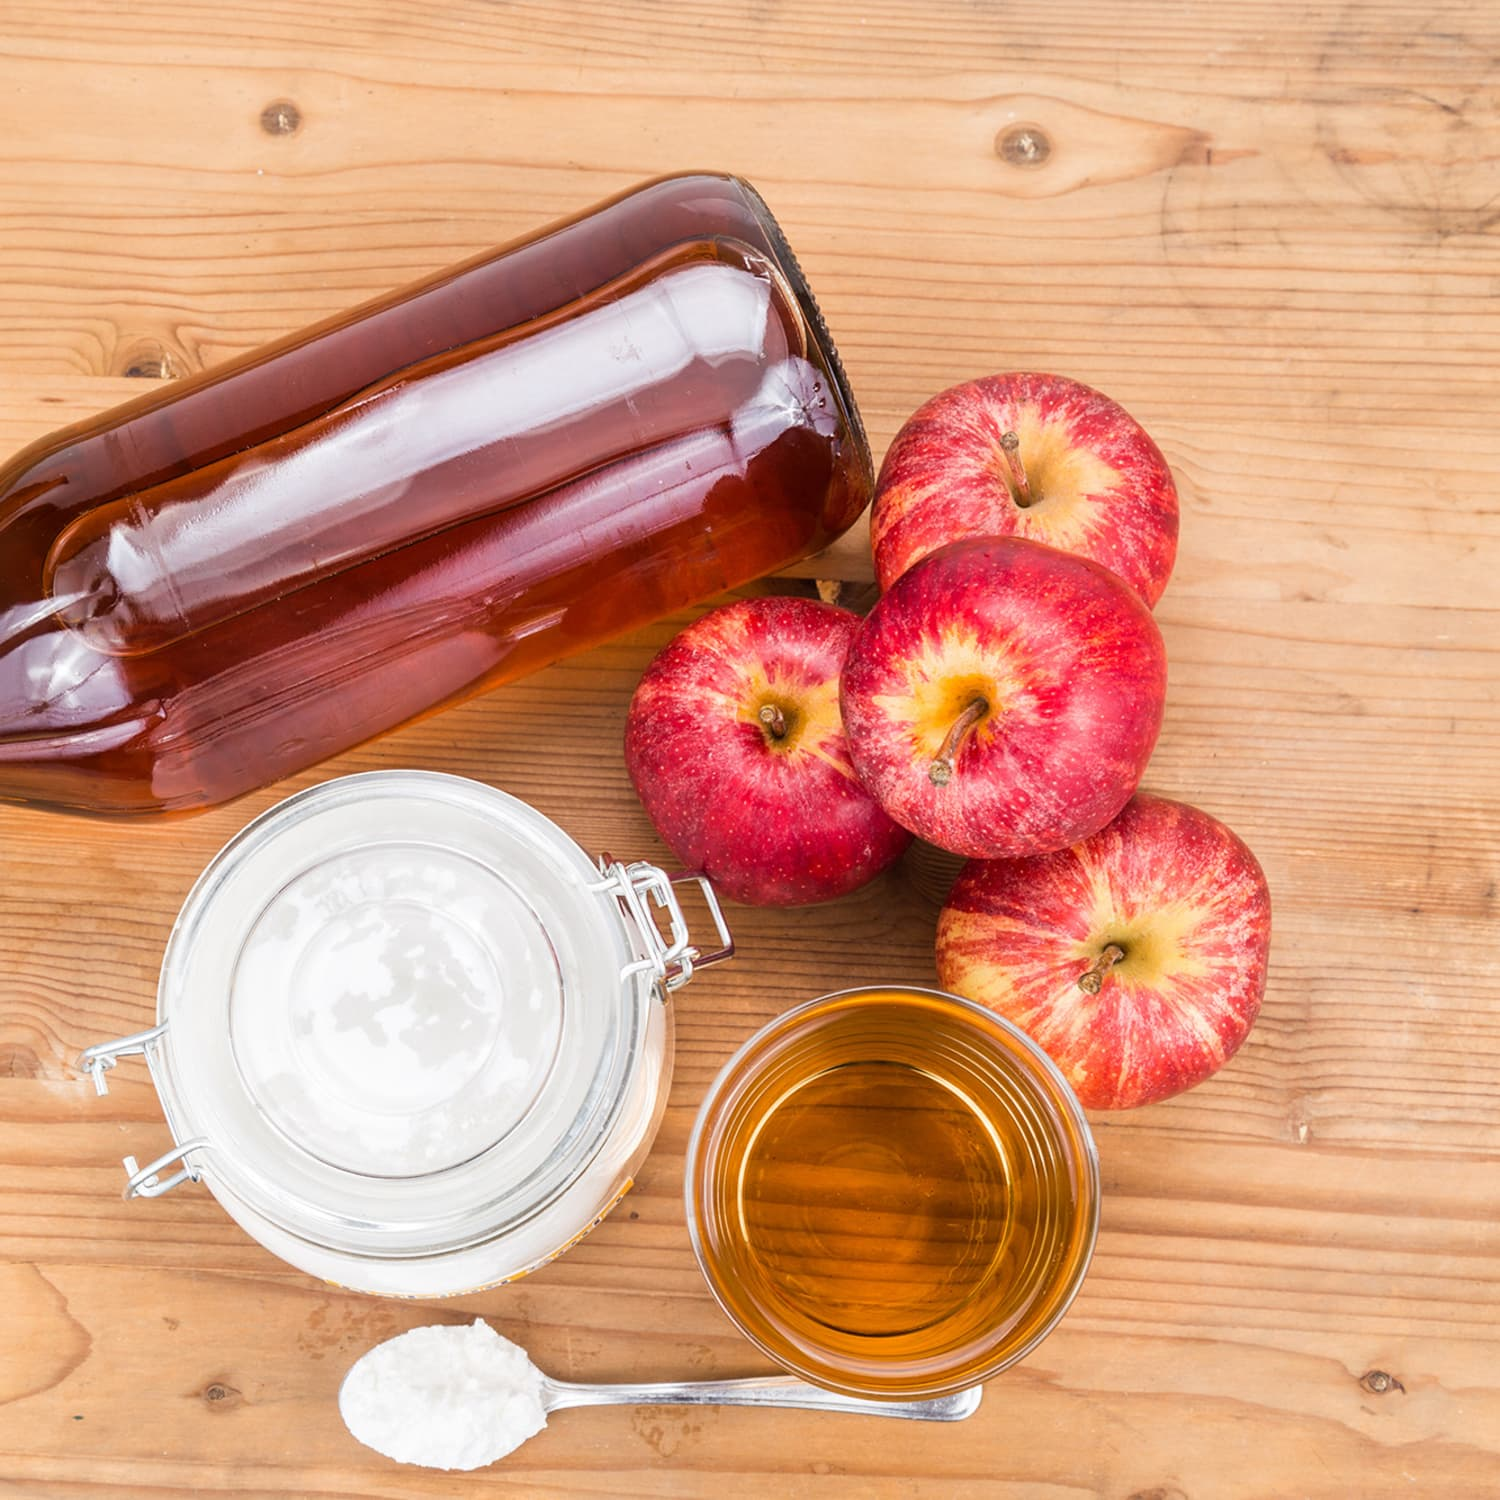 13 Ways to Clean Your Home with Apple Cider Vinegar | Apartment Therapy